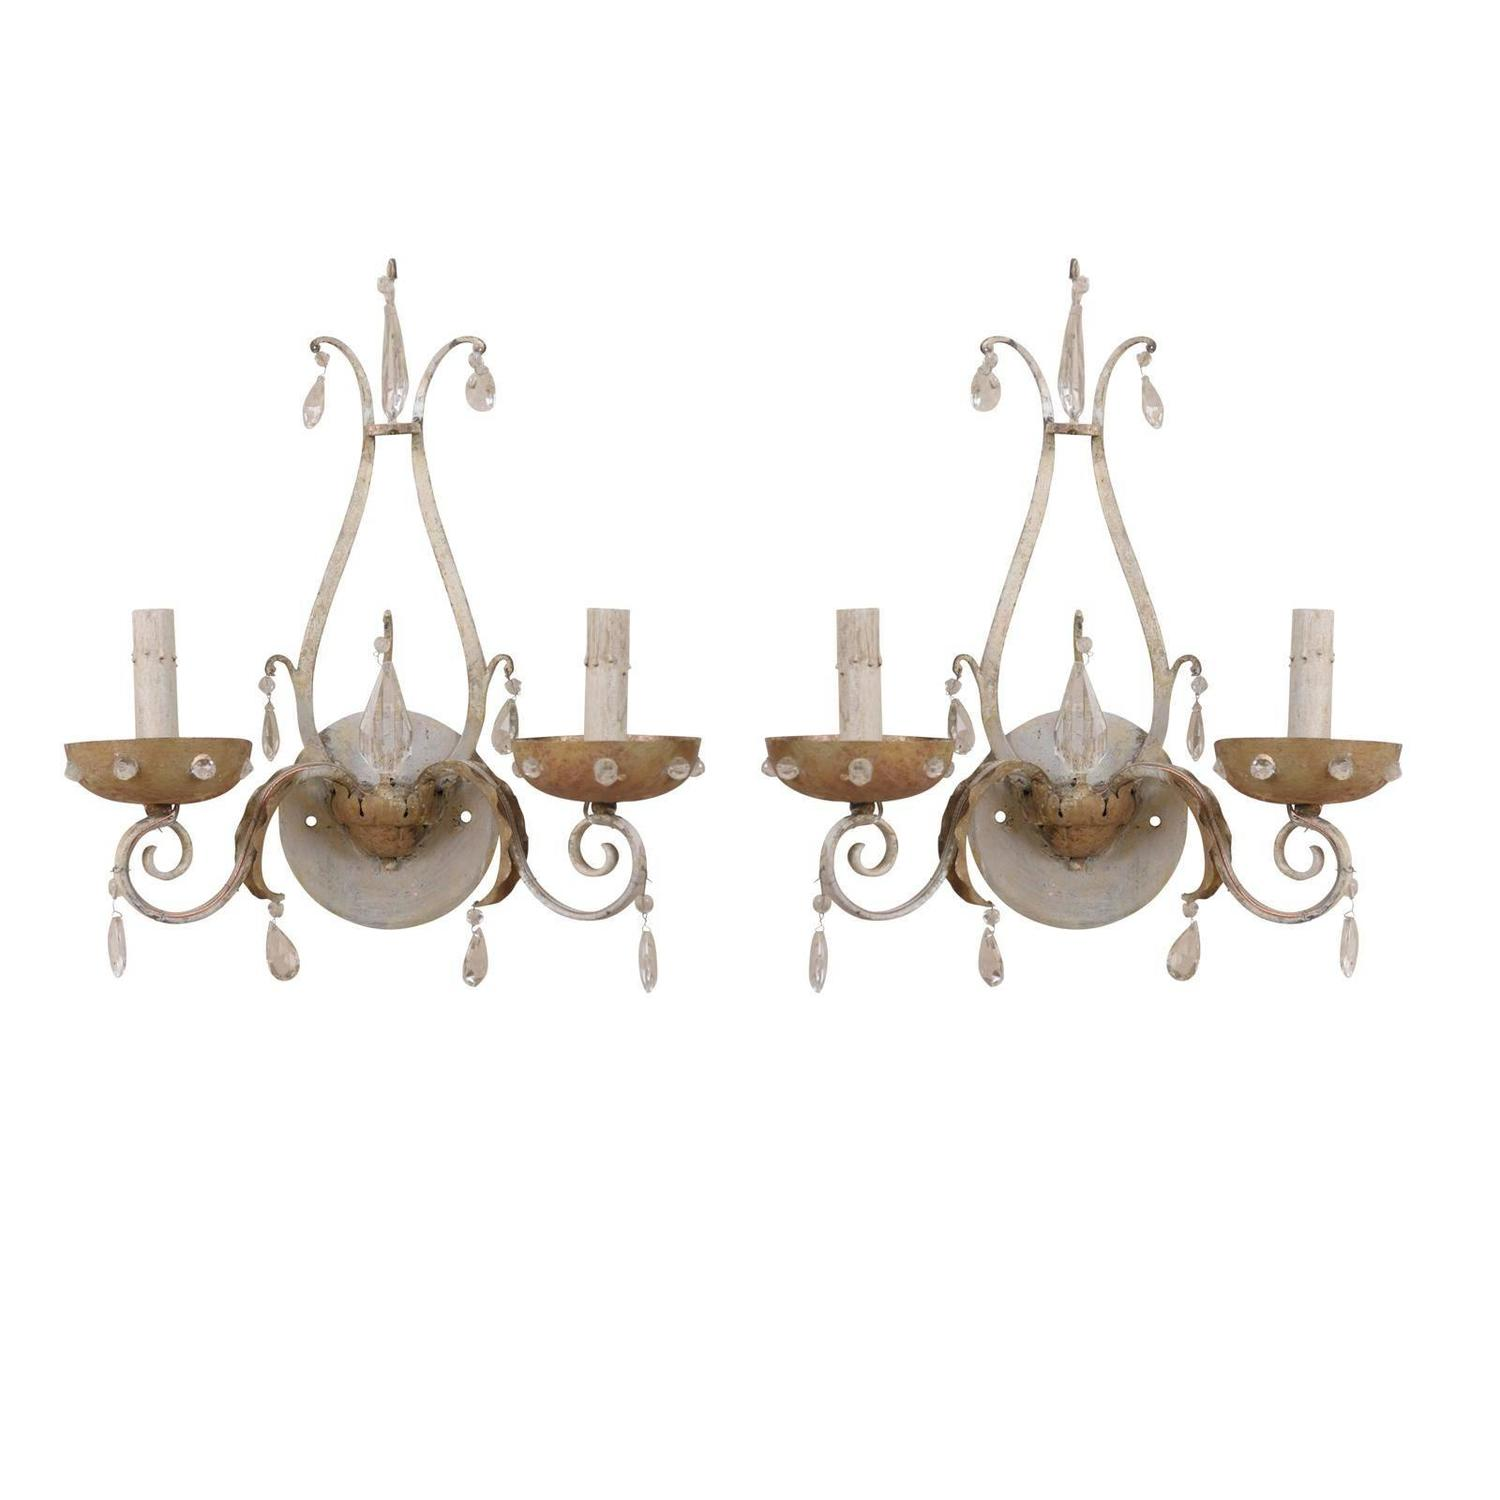 Wall Sconces With Crystal Accents : Pair of Painted Metal Two-Light Sconces with Crystal Accents For Sale at 1stdibs